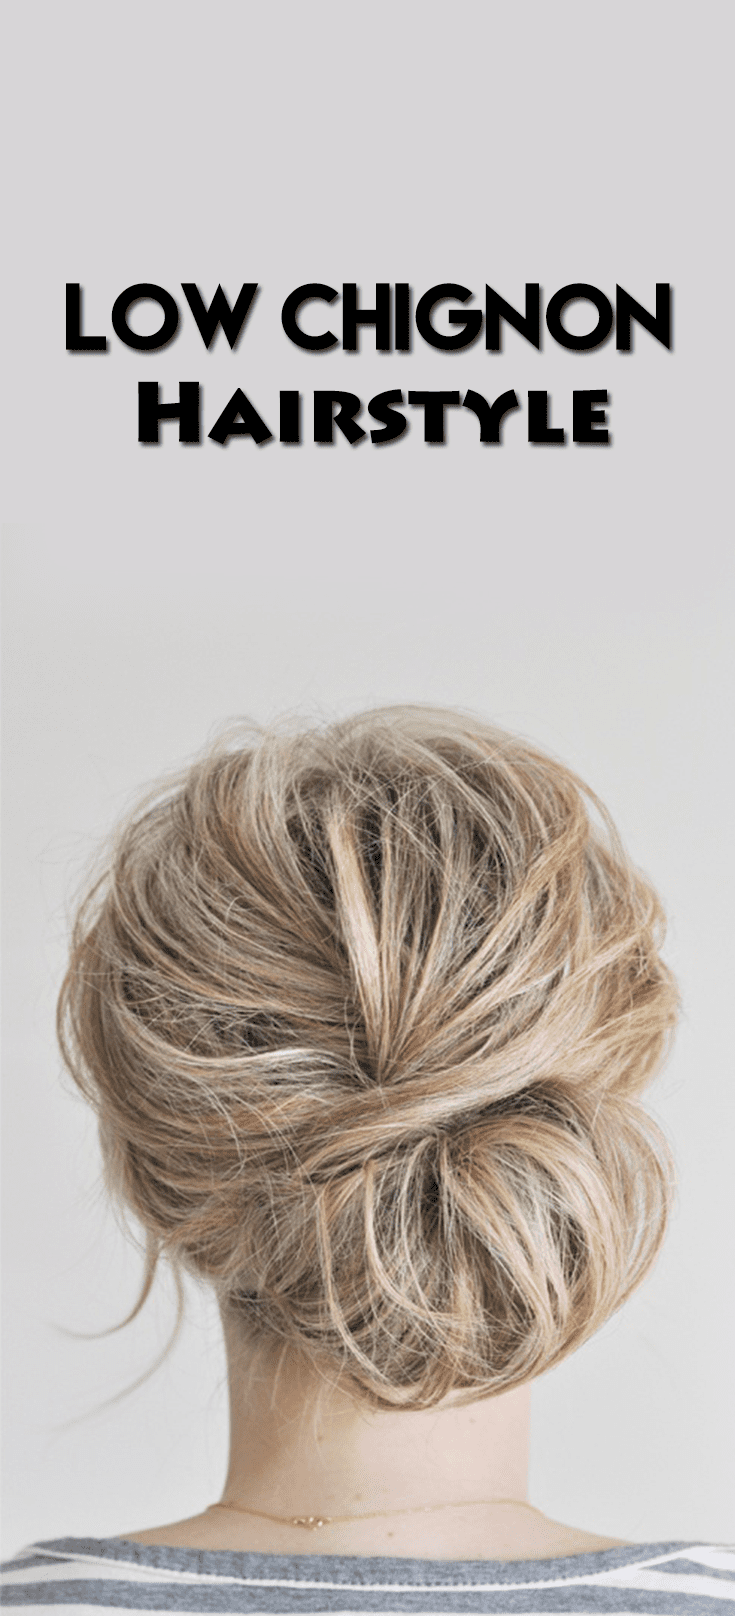 4 Sexy & Smart Ways To Style Your Low Chignon Hairstyle